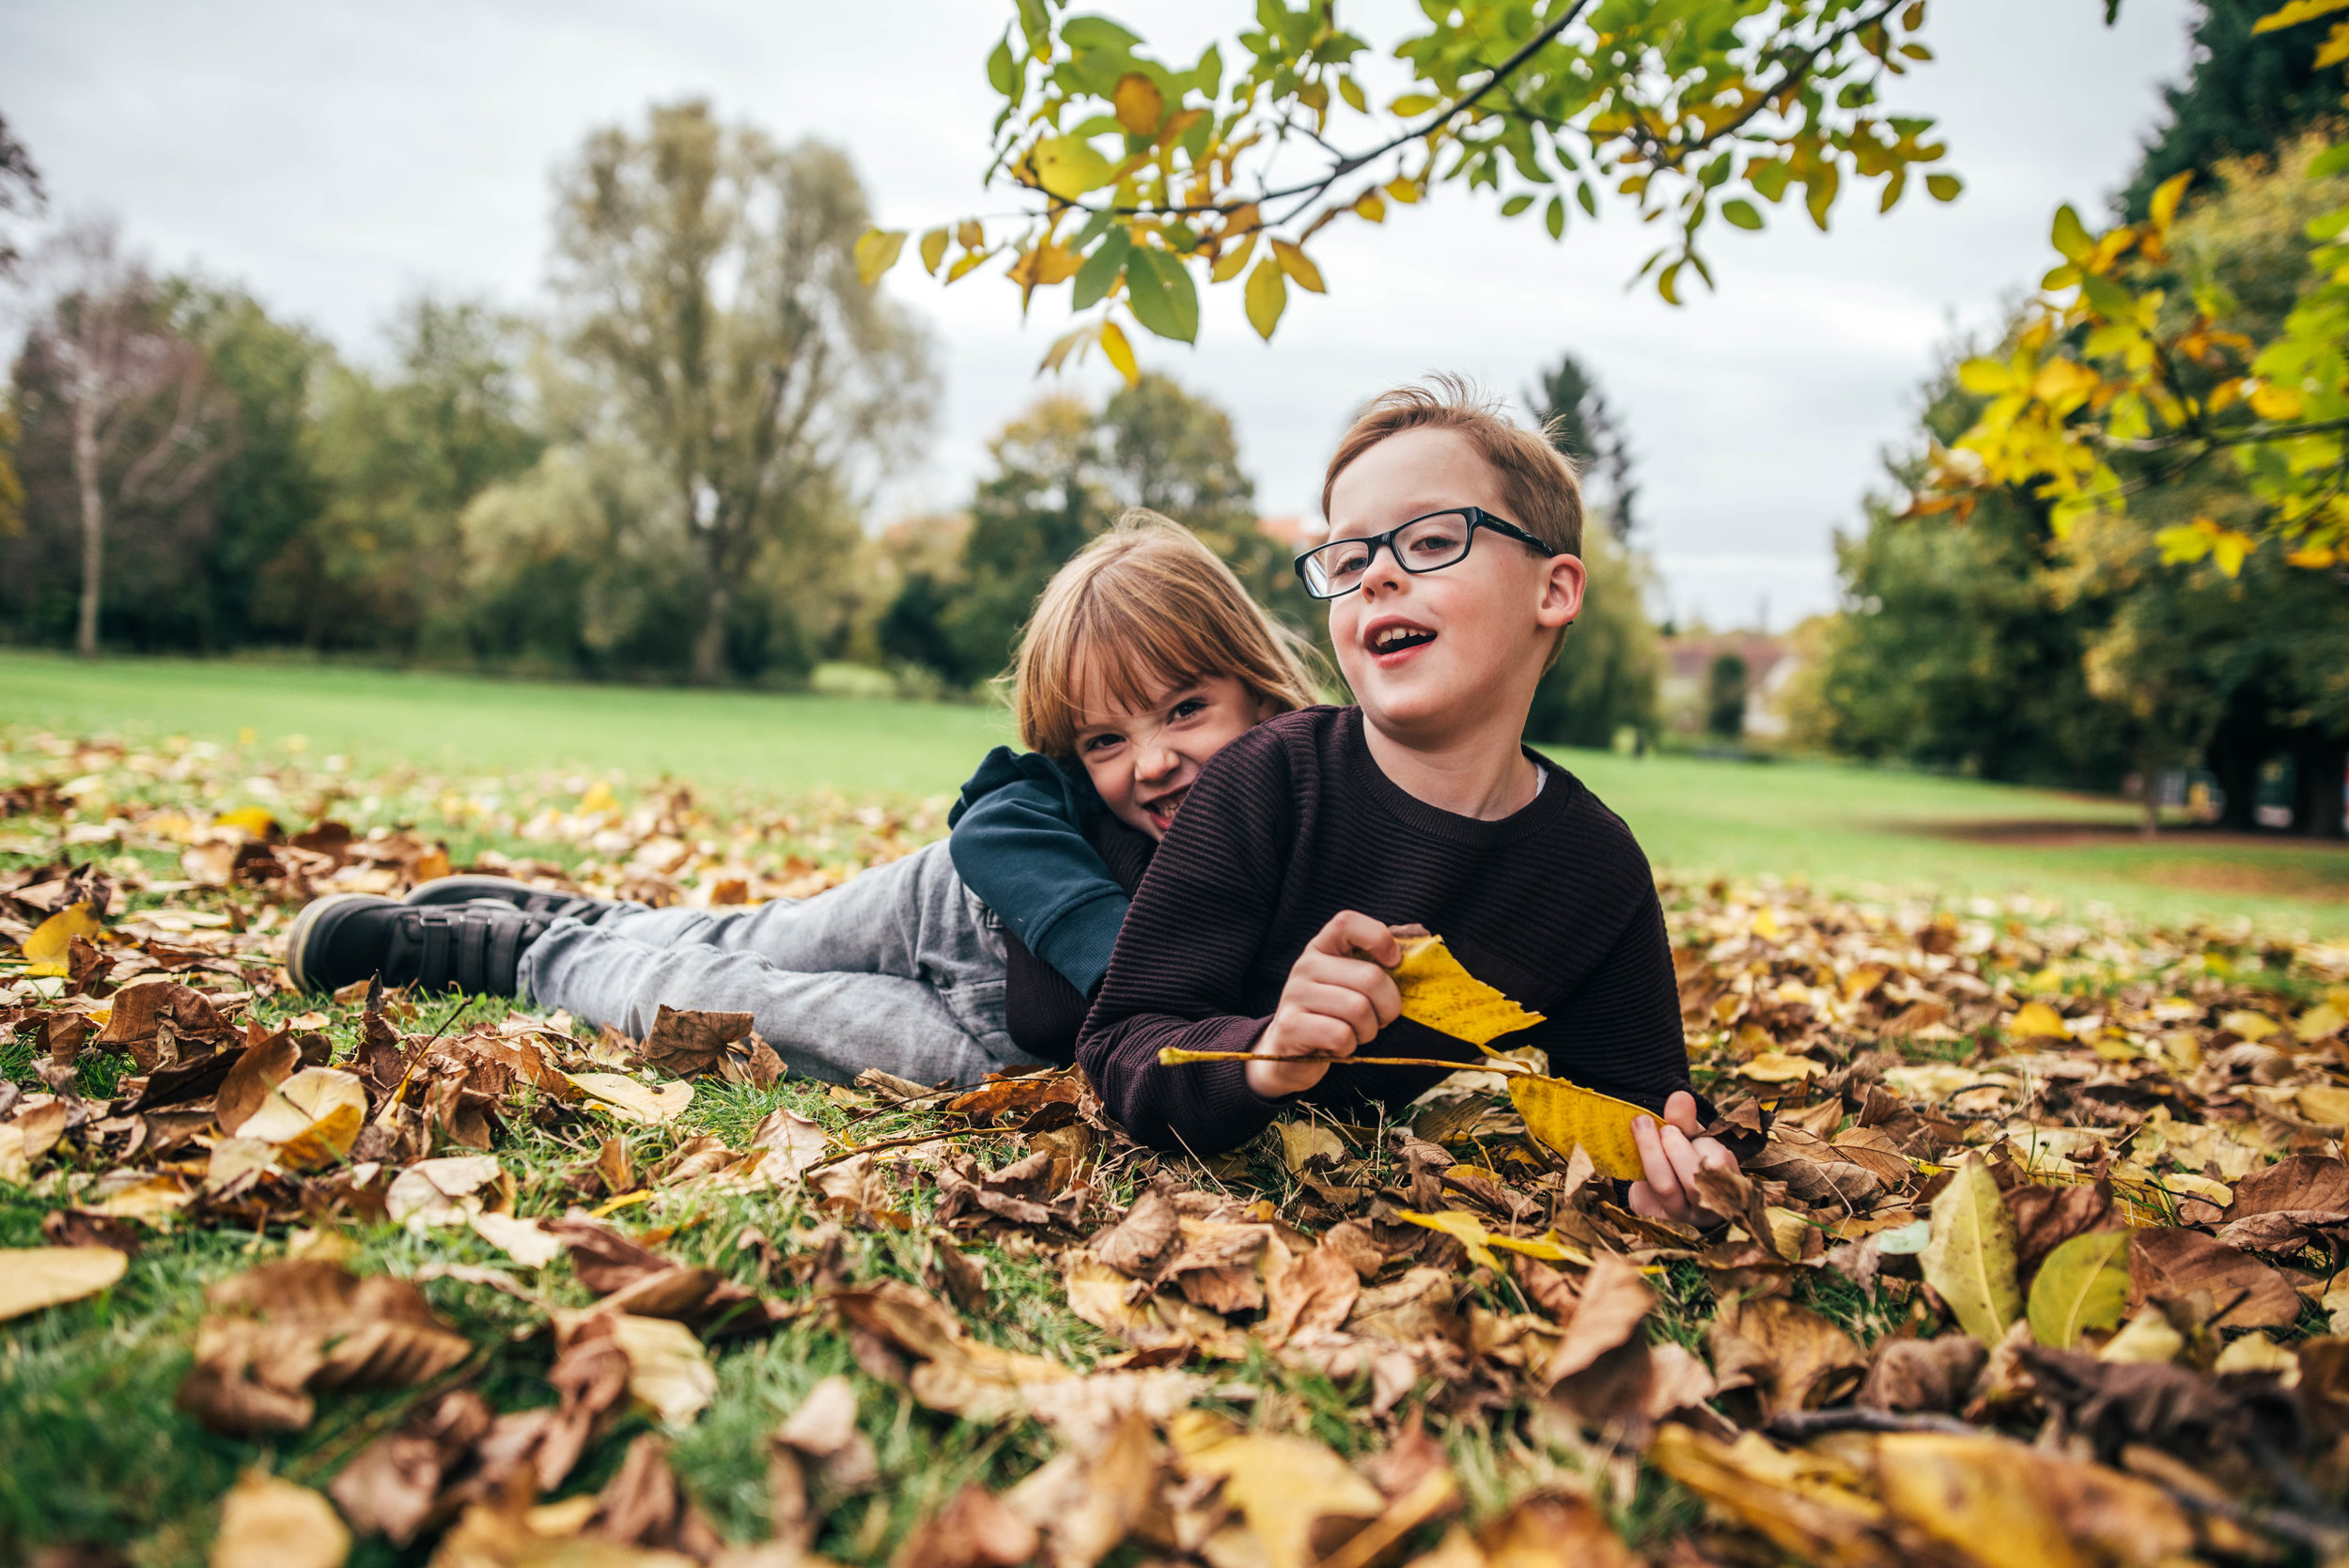 Brother and Sister play in autumn leaves Essex Documentary Portrait Photographer